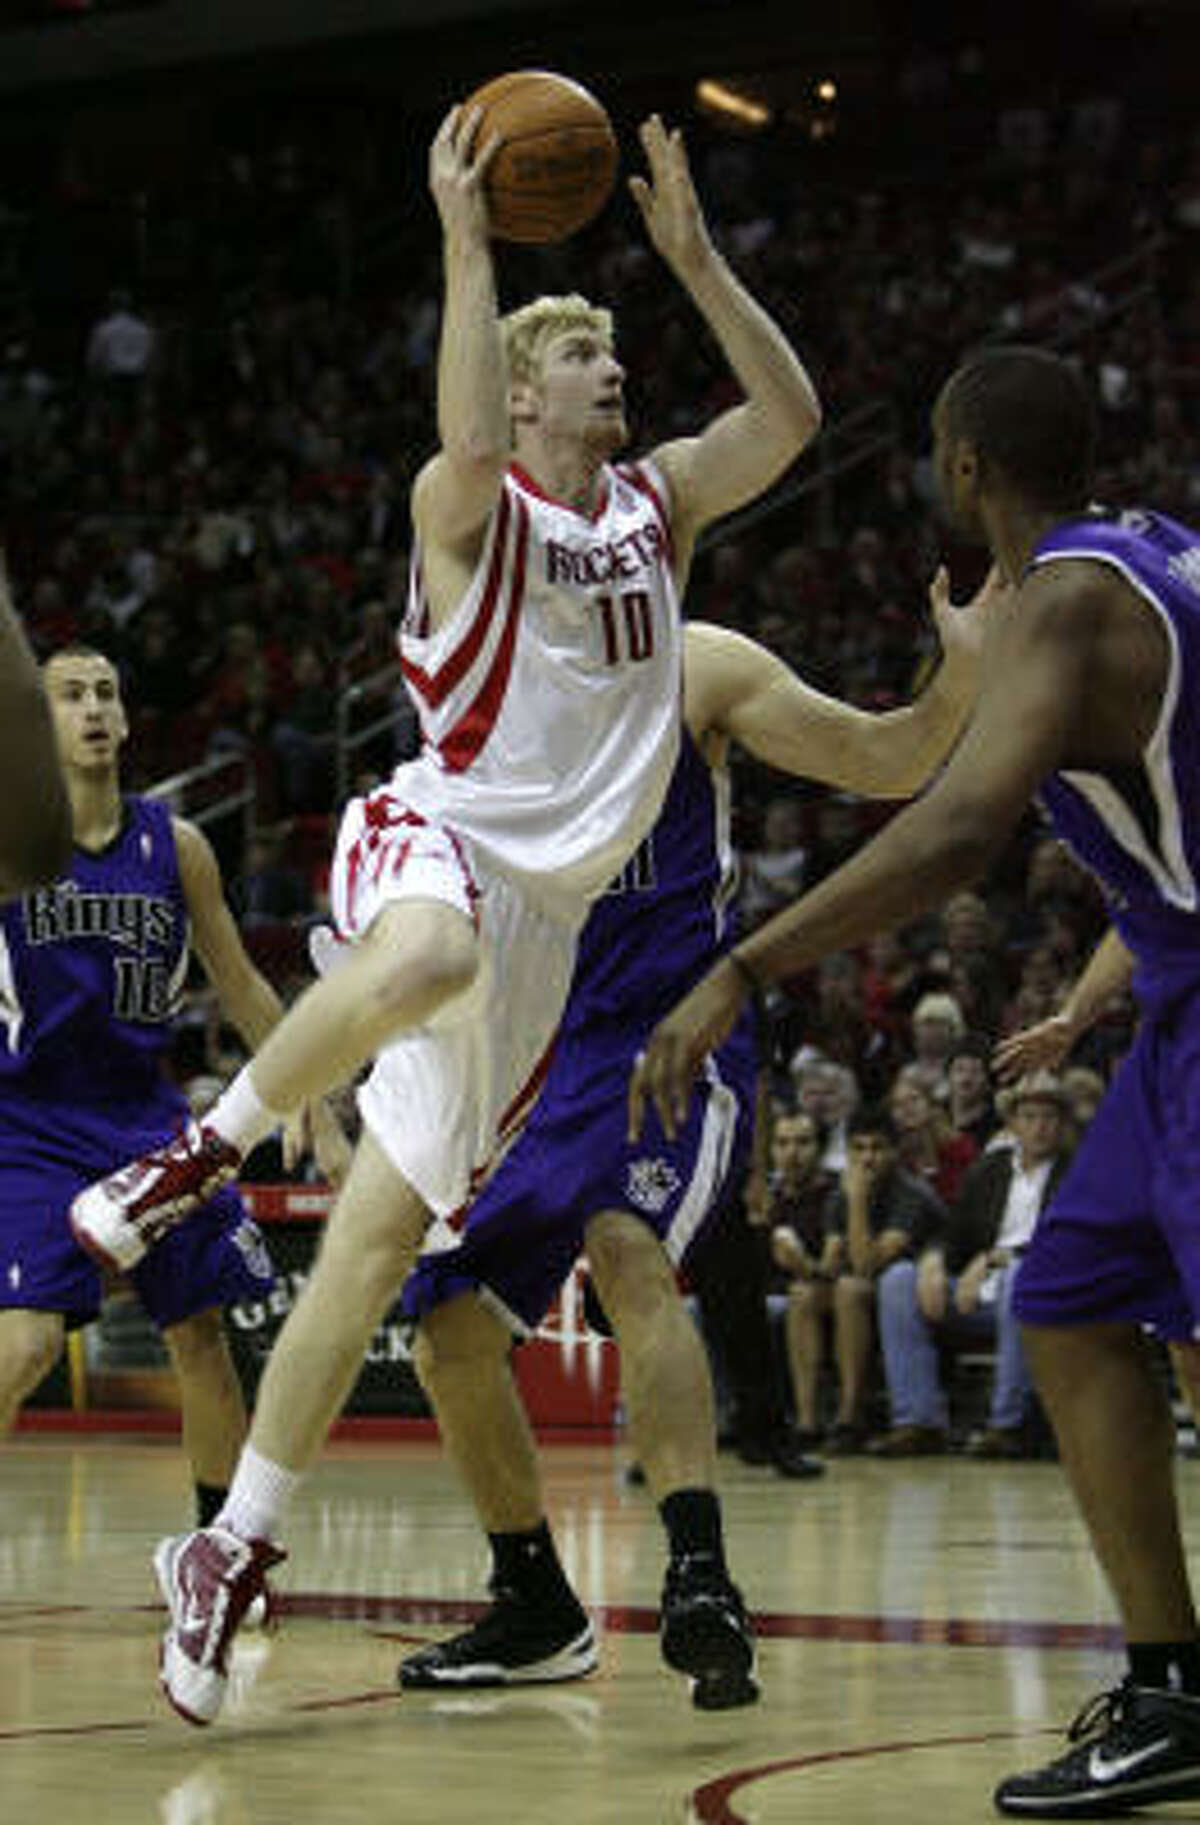 Rockets forward Chase Budinger (10) scored 12 points off the bench.